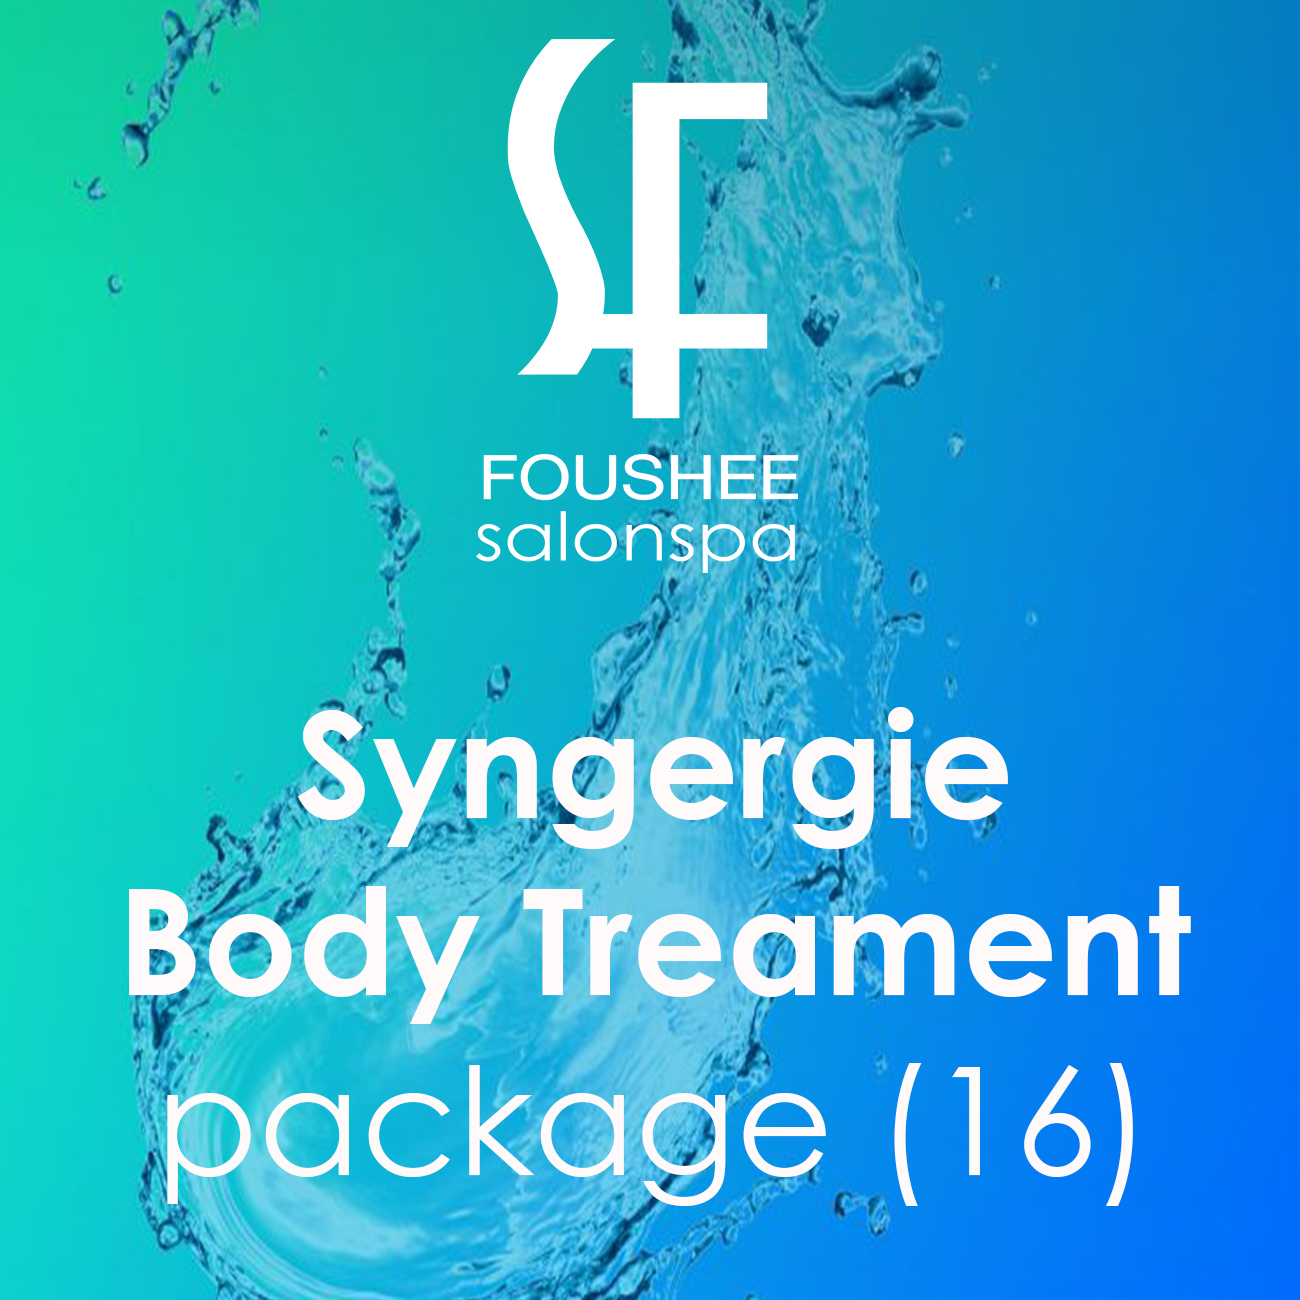 Synergie Salon Synergie Body Treatment Package 16 Foushee Salonspa